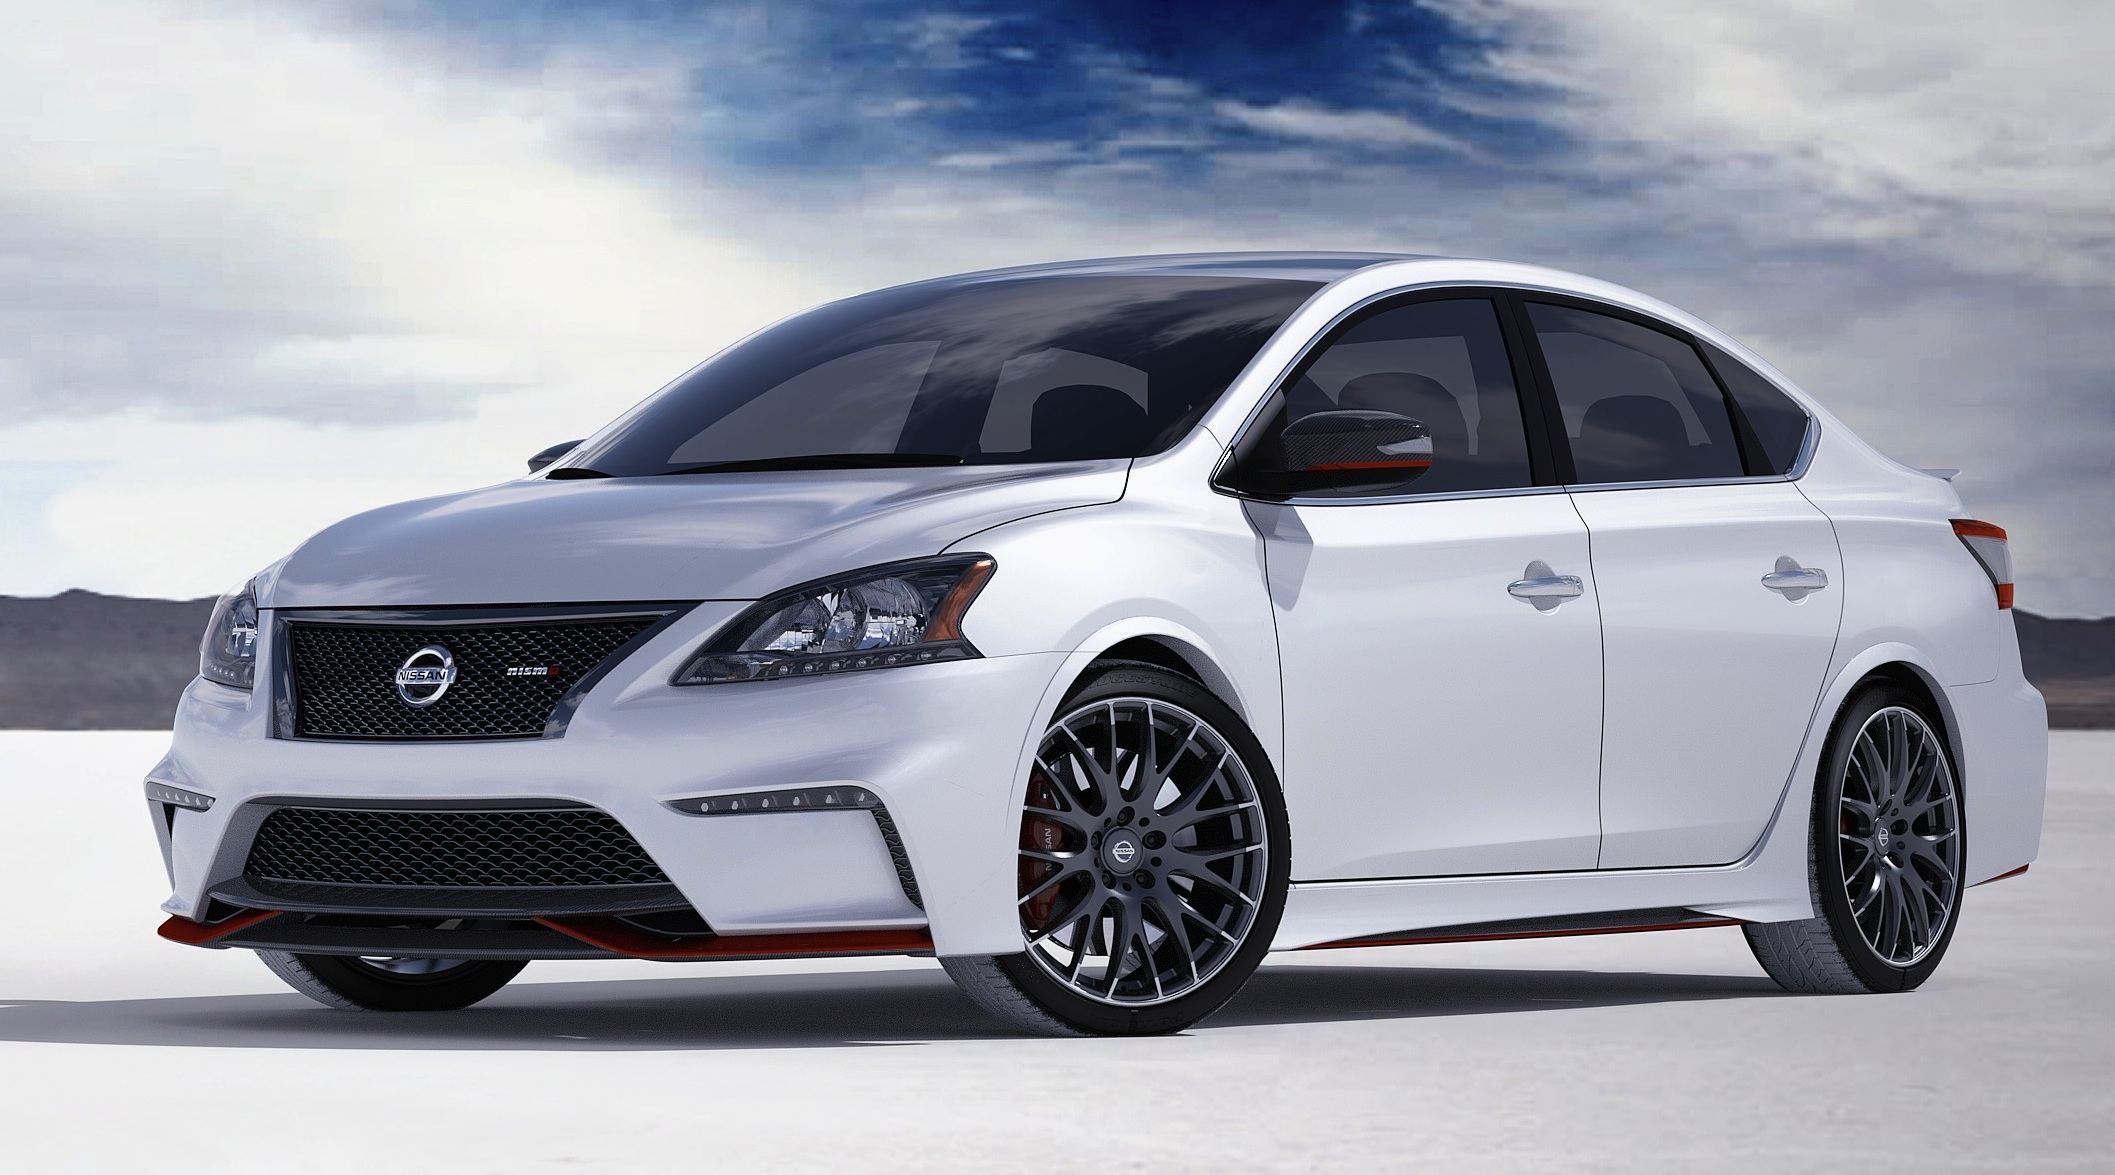 Nissan Pulsar Nismo revealed: move over SSS - Photos (1 of 34)